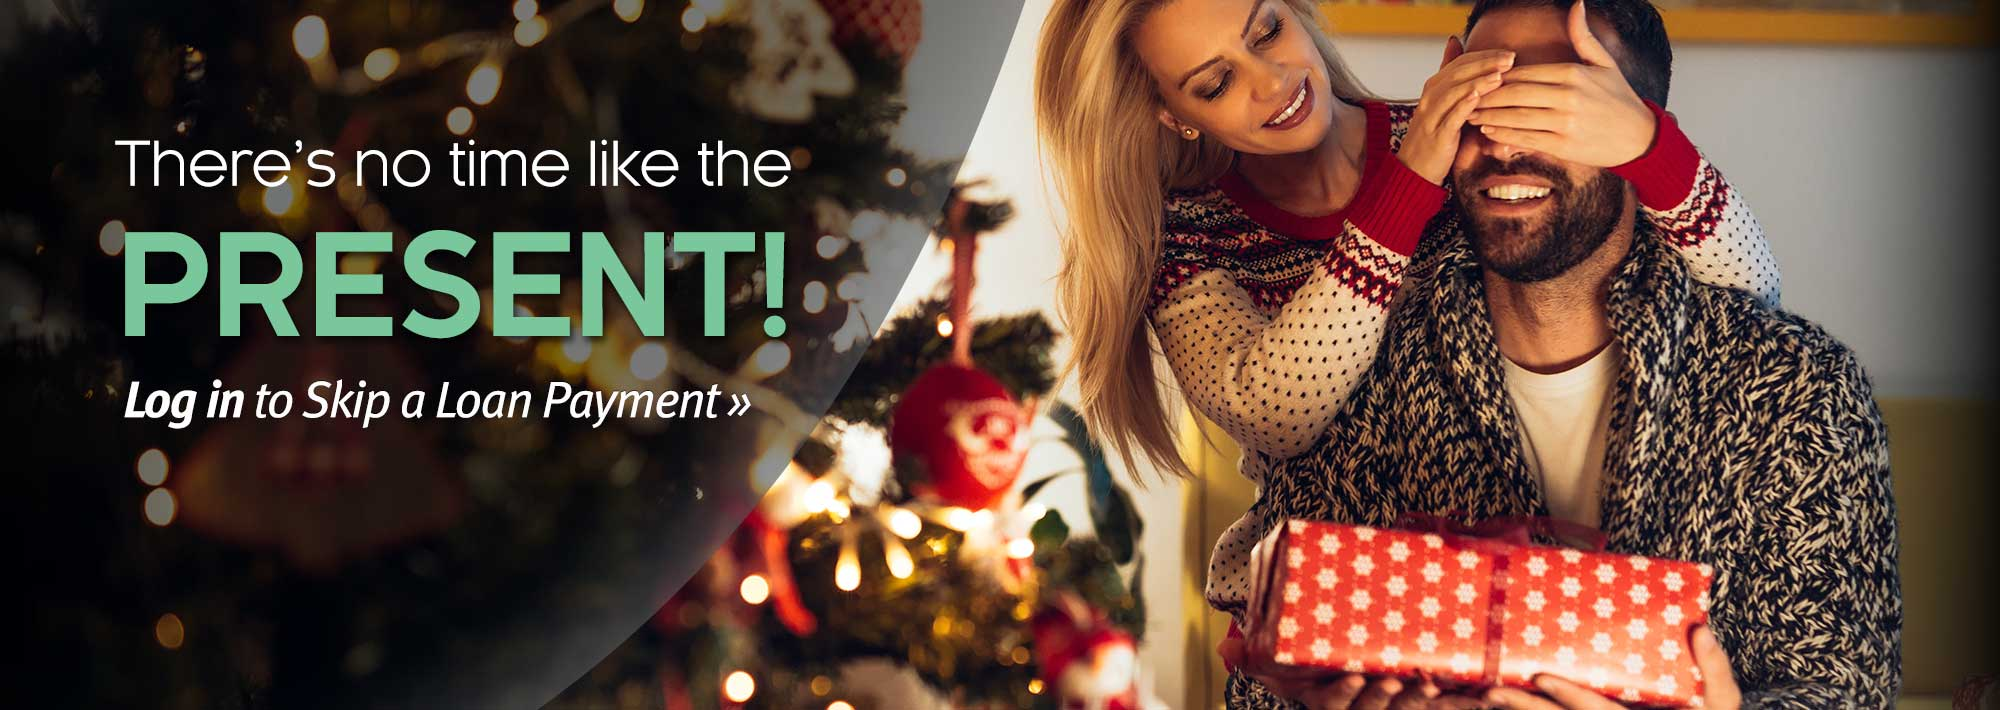 There's no time like the present! Log in to Skip a Loan Payment.